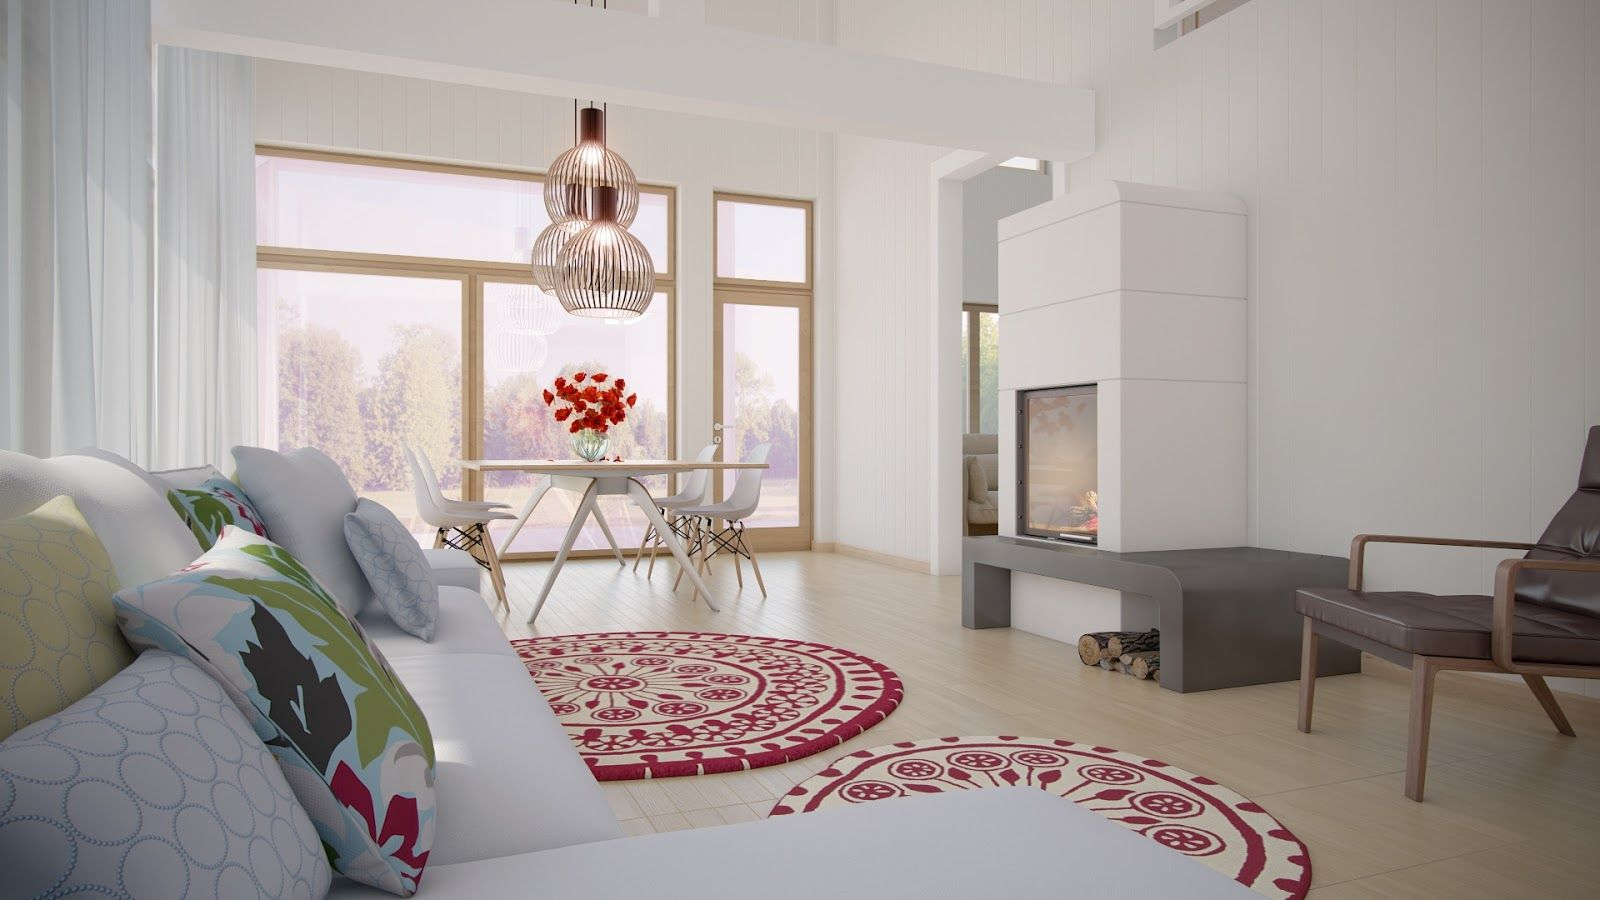 Decoration Ideas For Apartments  Bedrooms  Home Small Living Interesting 2014 Dining Room Colors Decorating Inspiration